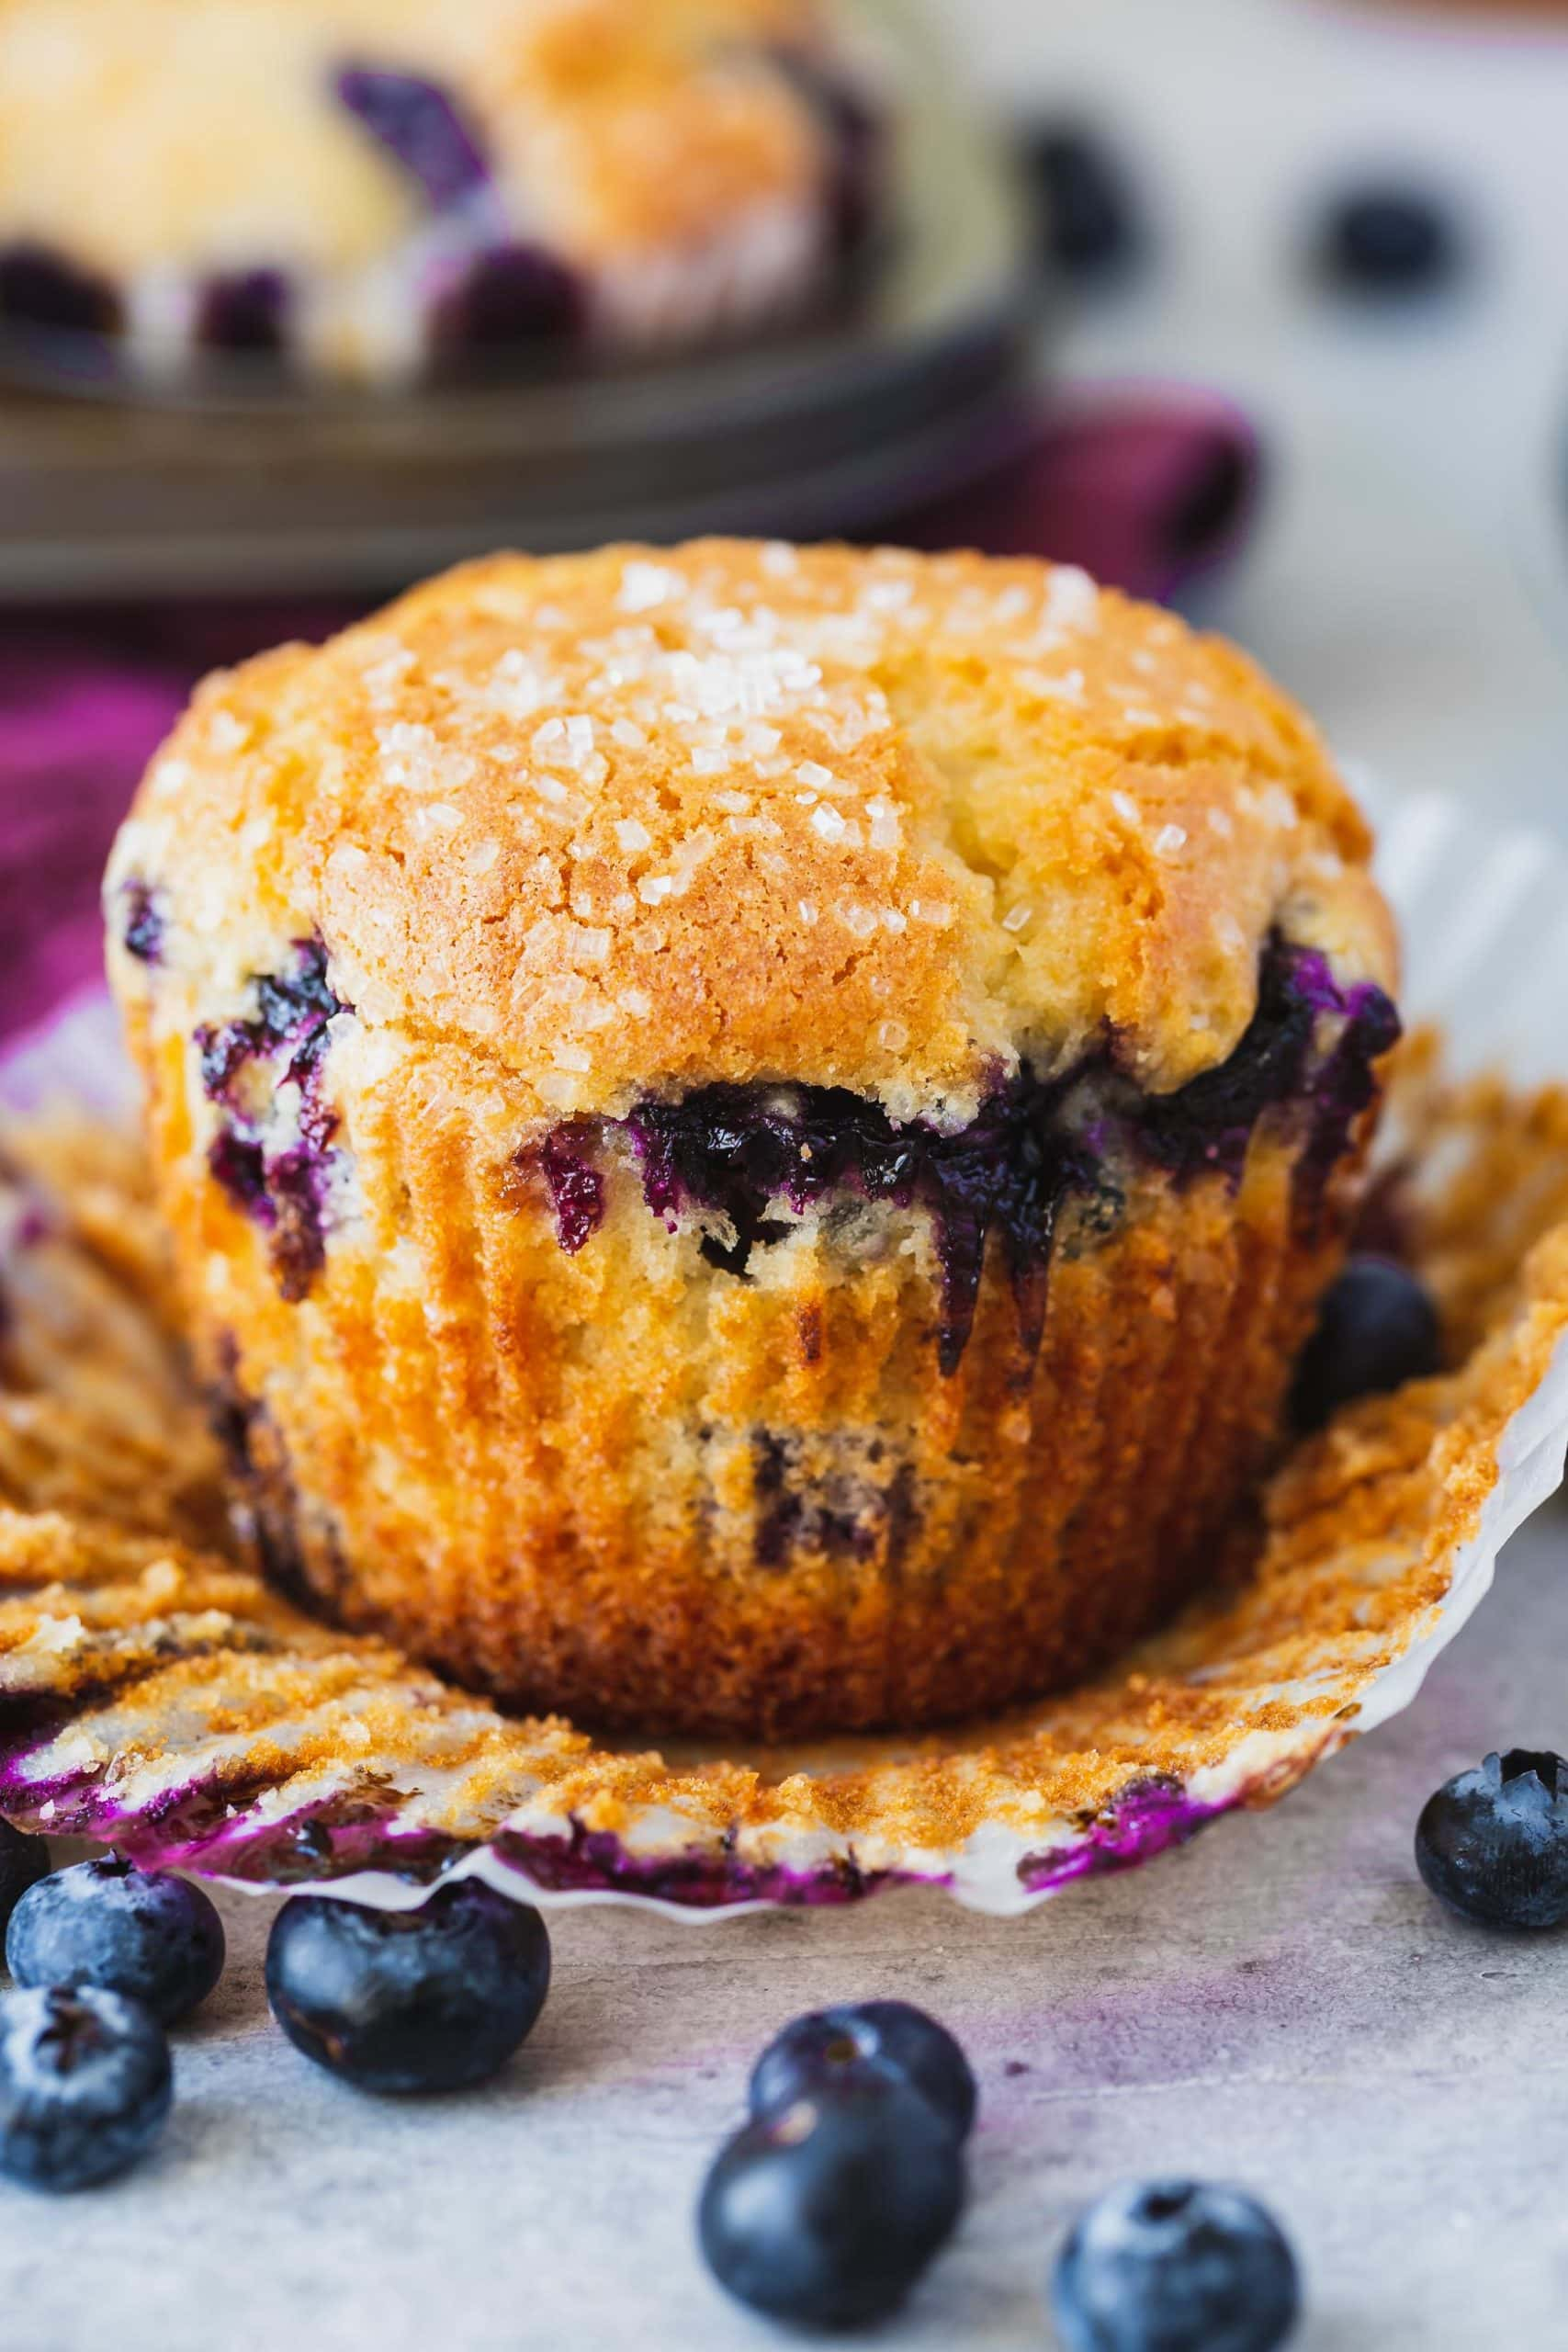 Raspberry cake with paper lining peeled back so you can see golden brown cakes filled with blueberries.